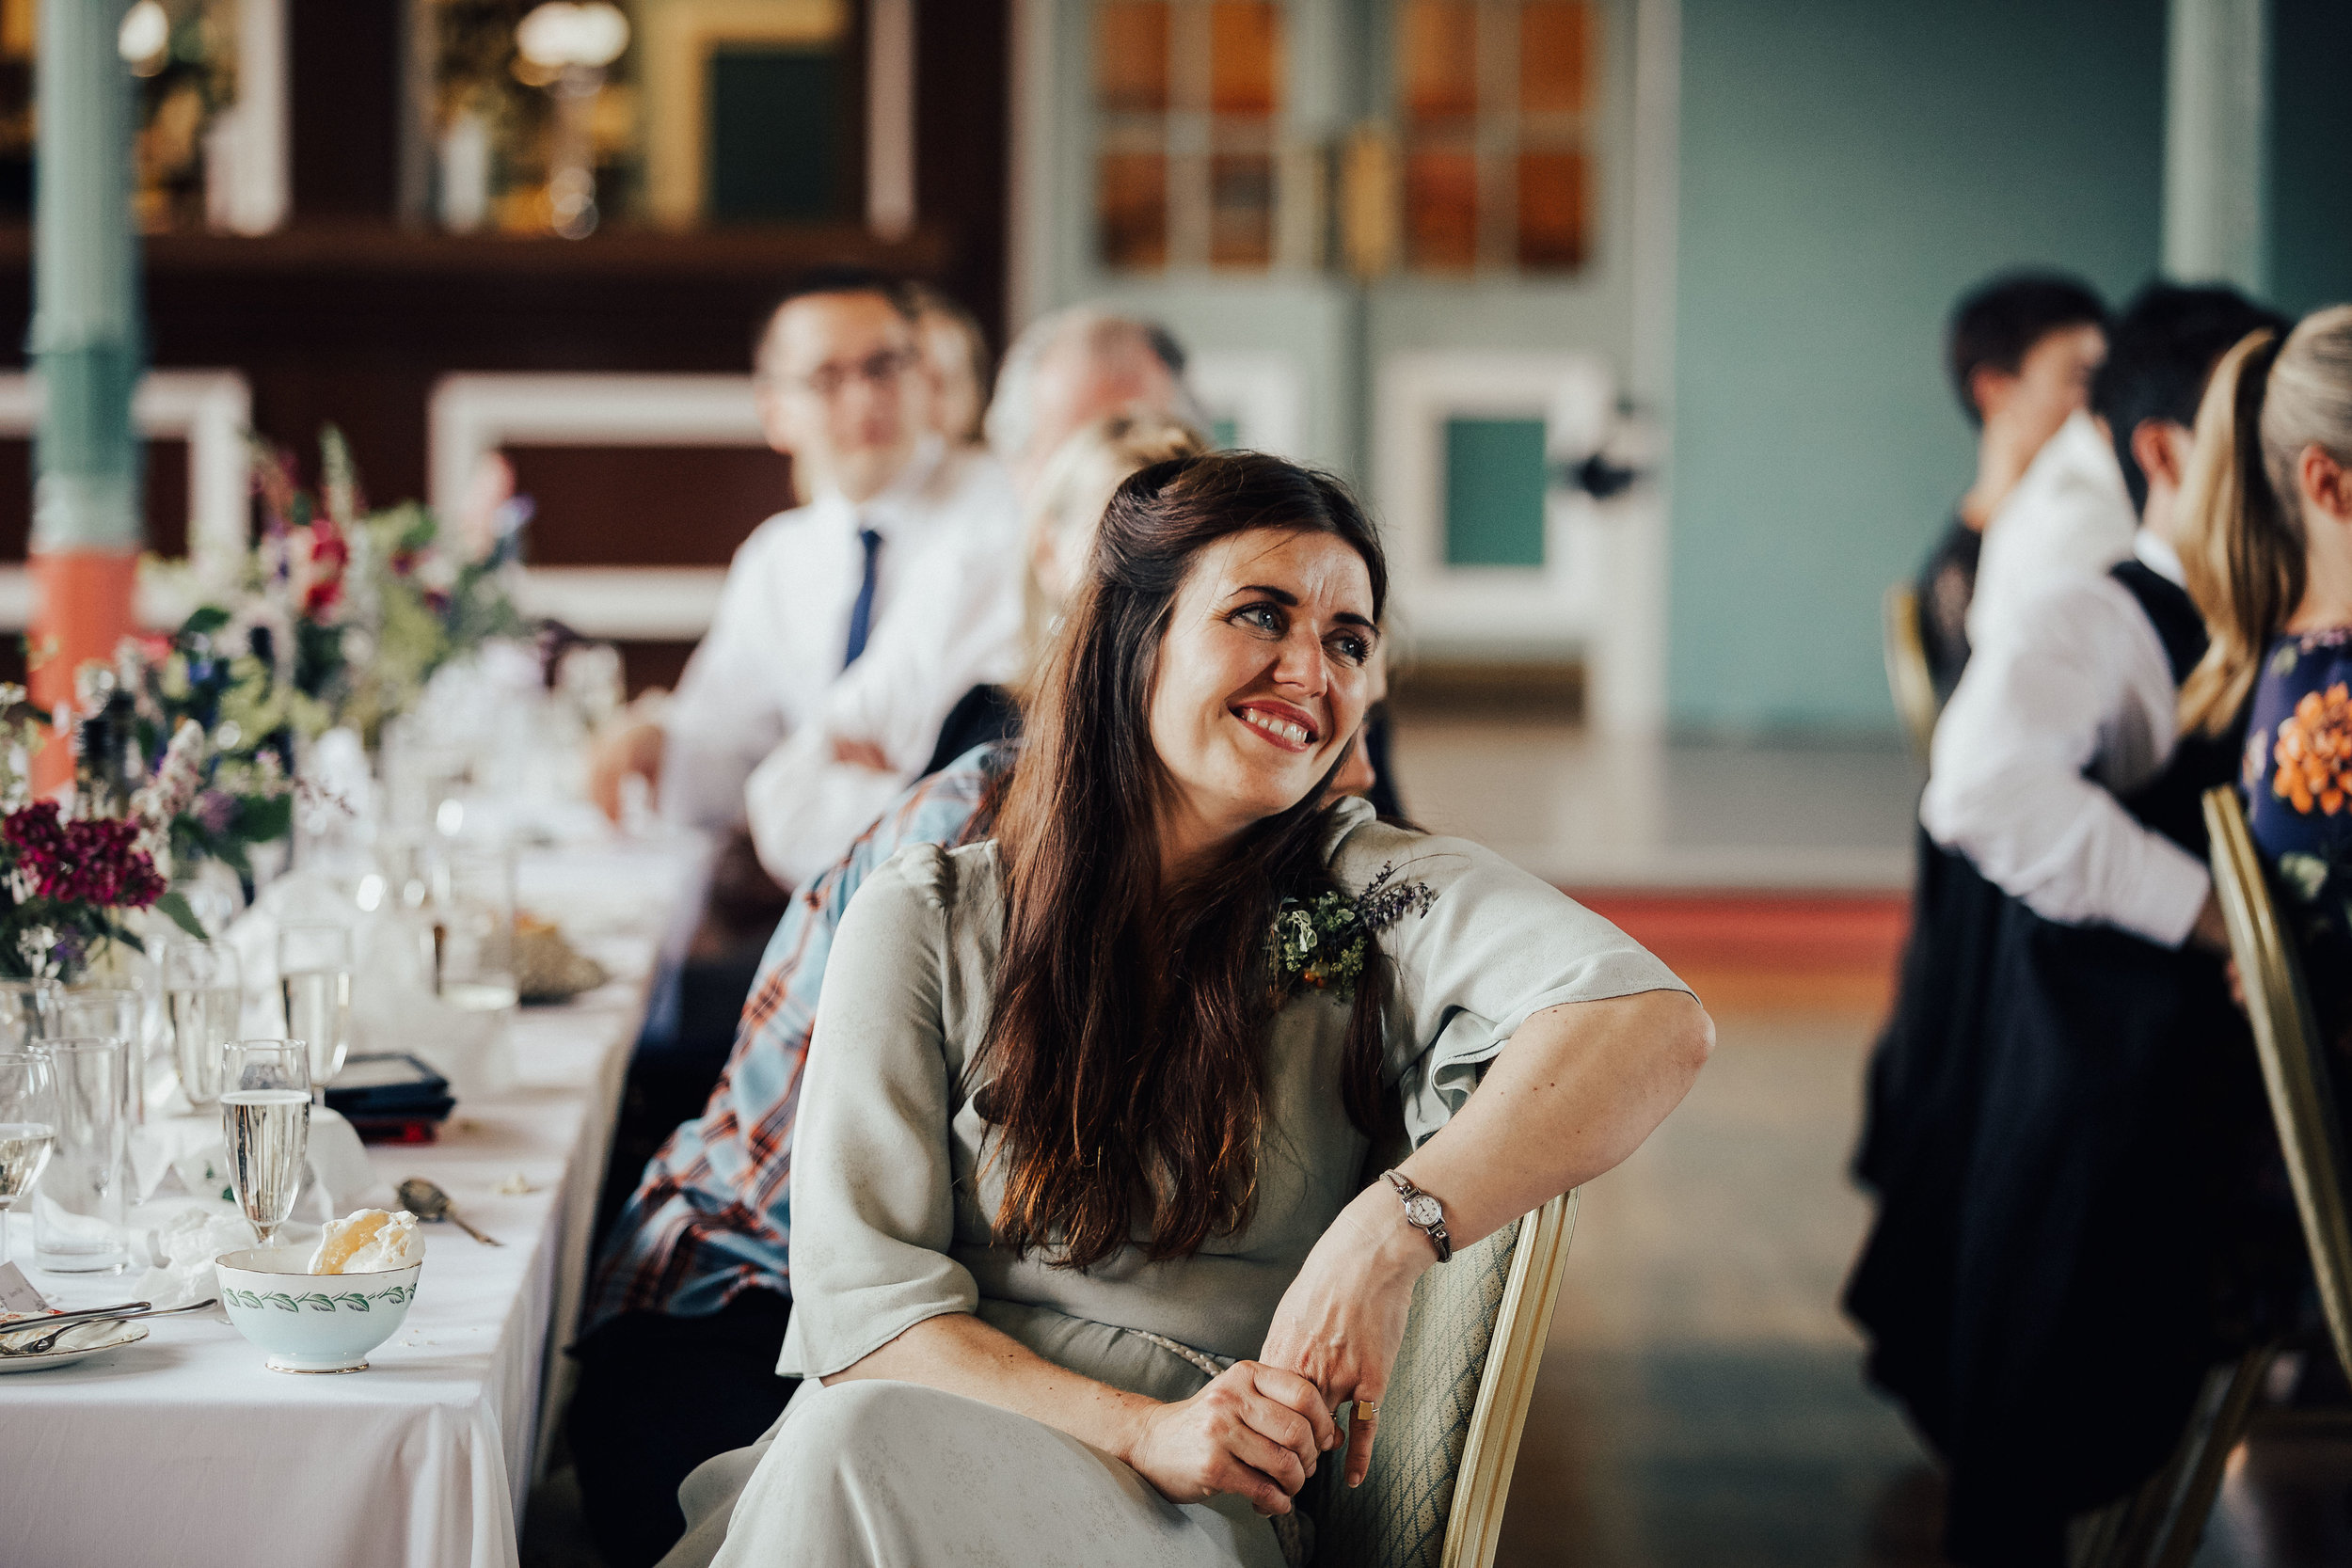 VICTORIA_HALL_SALTAIRE_VINTAGE_YORKSHIRE_WEDDING_PJ_PHILLIPS_PHOTOGRAPHY_104.jpg